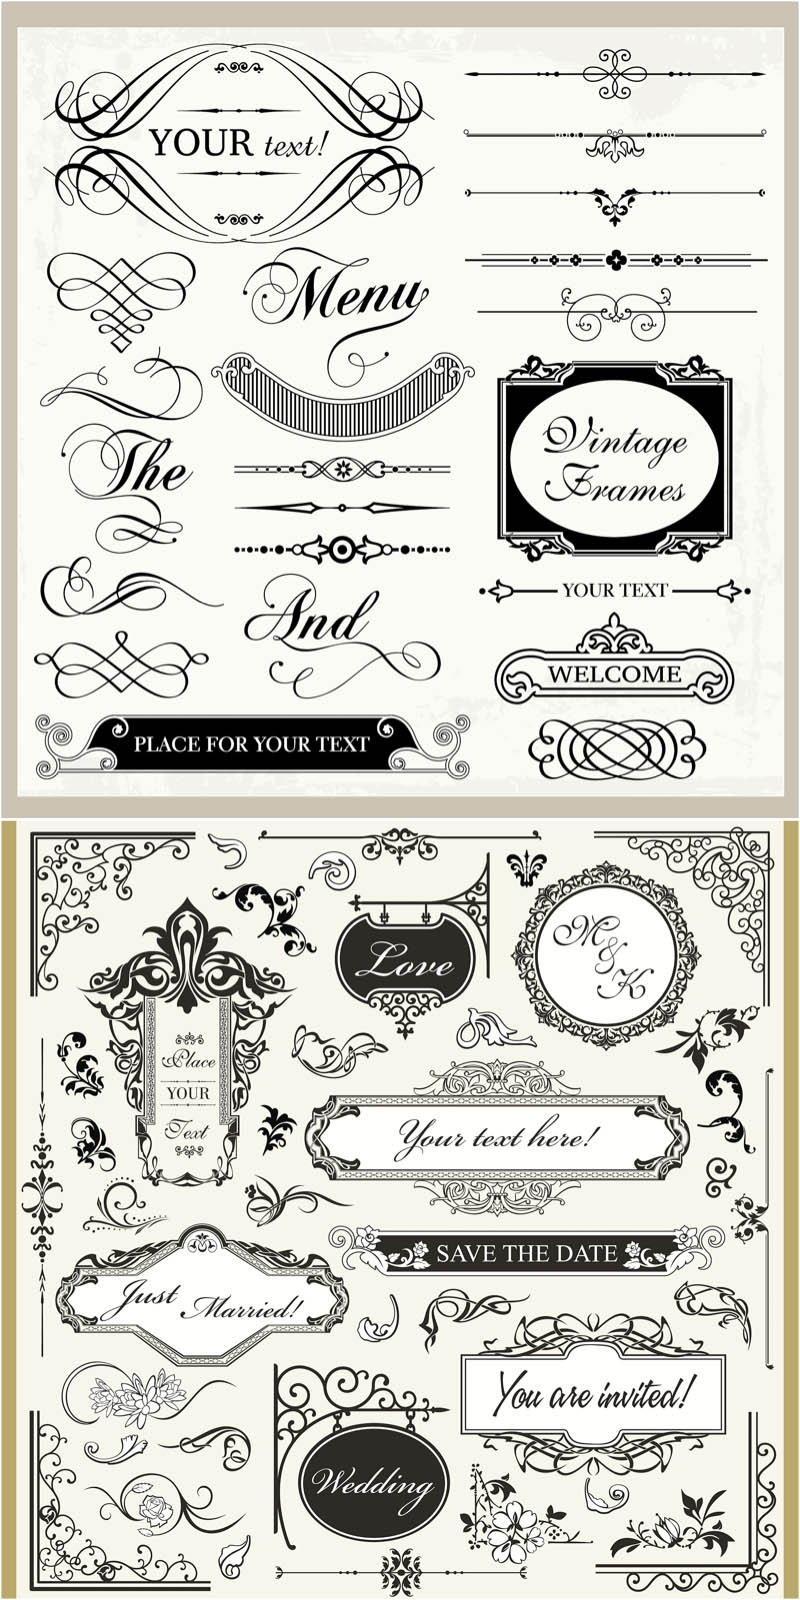 13 Wedding Border Vector Images